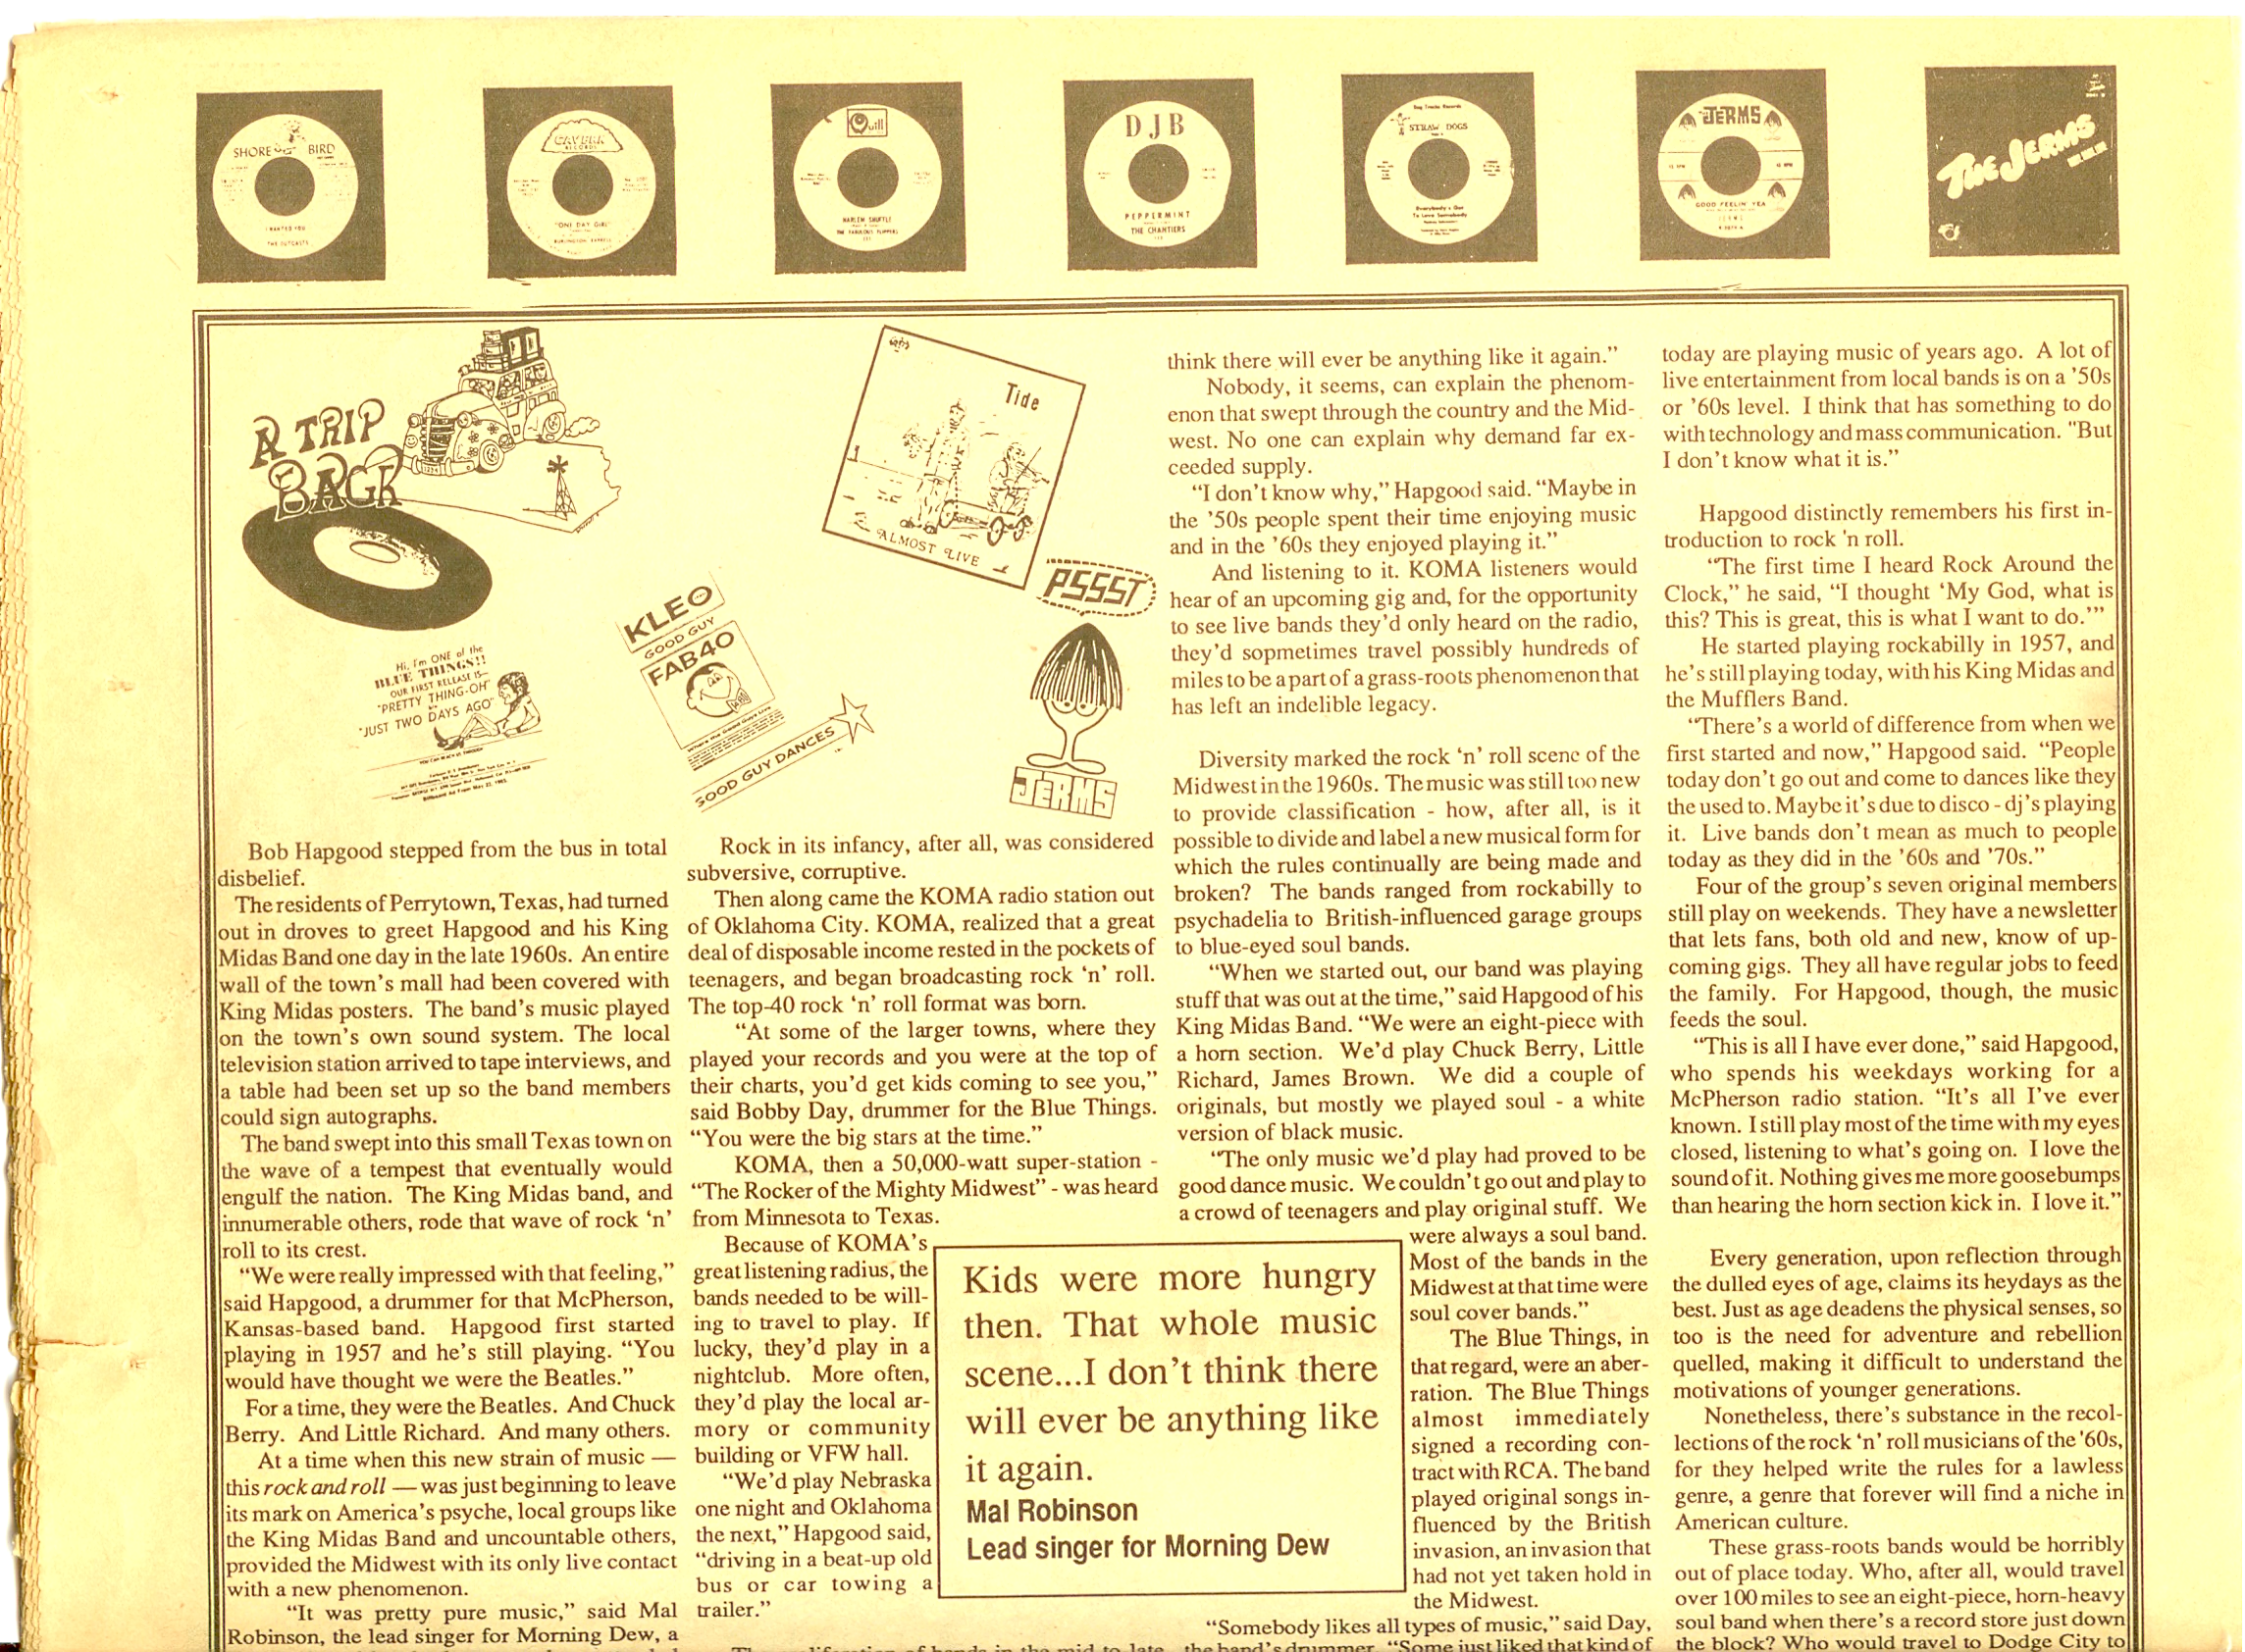 The Jerms article in The Note March 1991 about songs on KOMA radio. The photos form 1965.